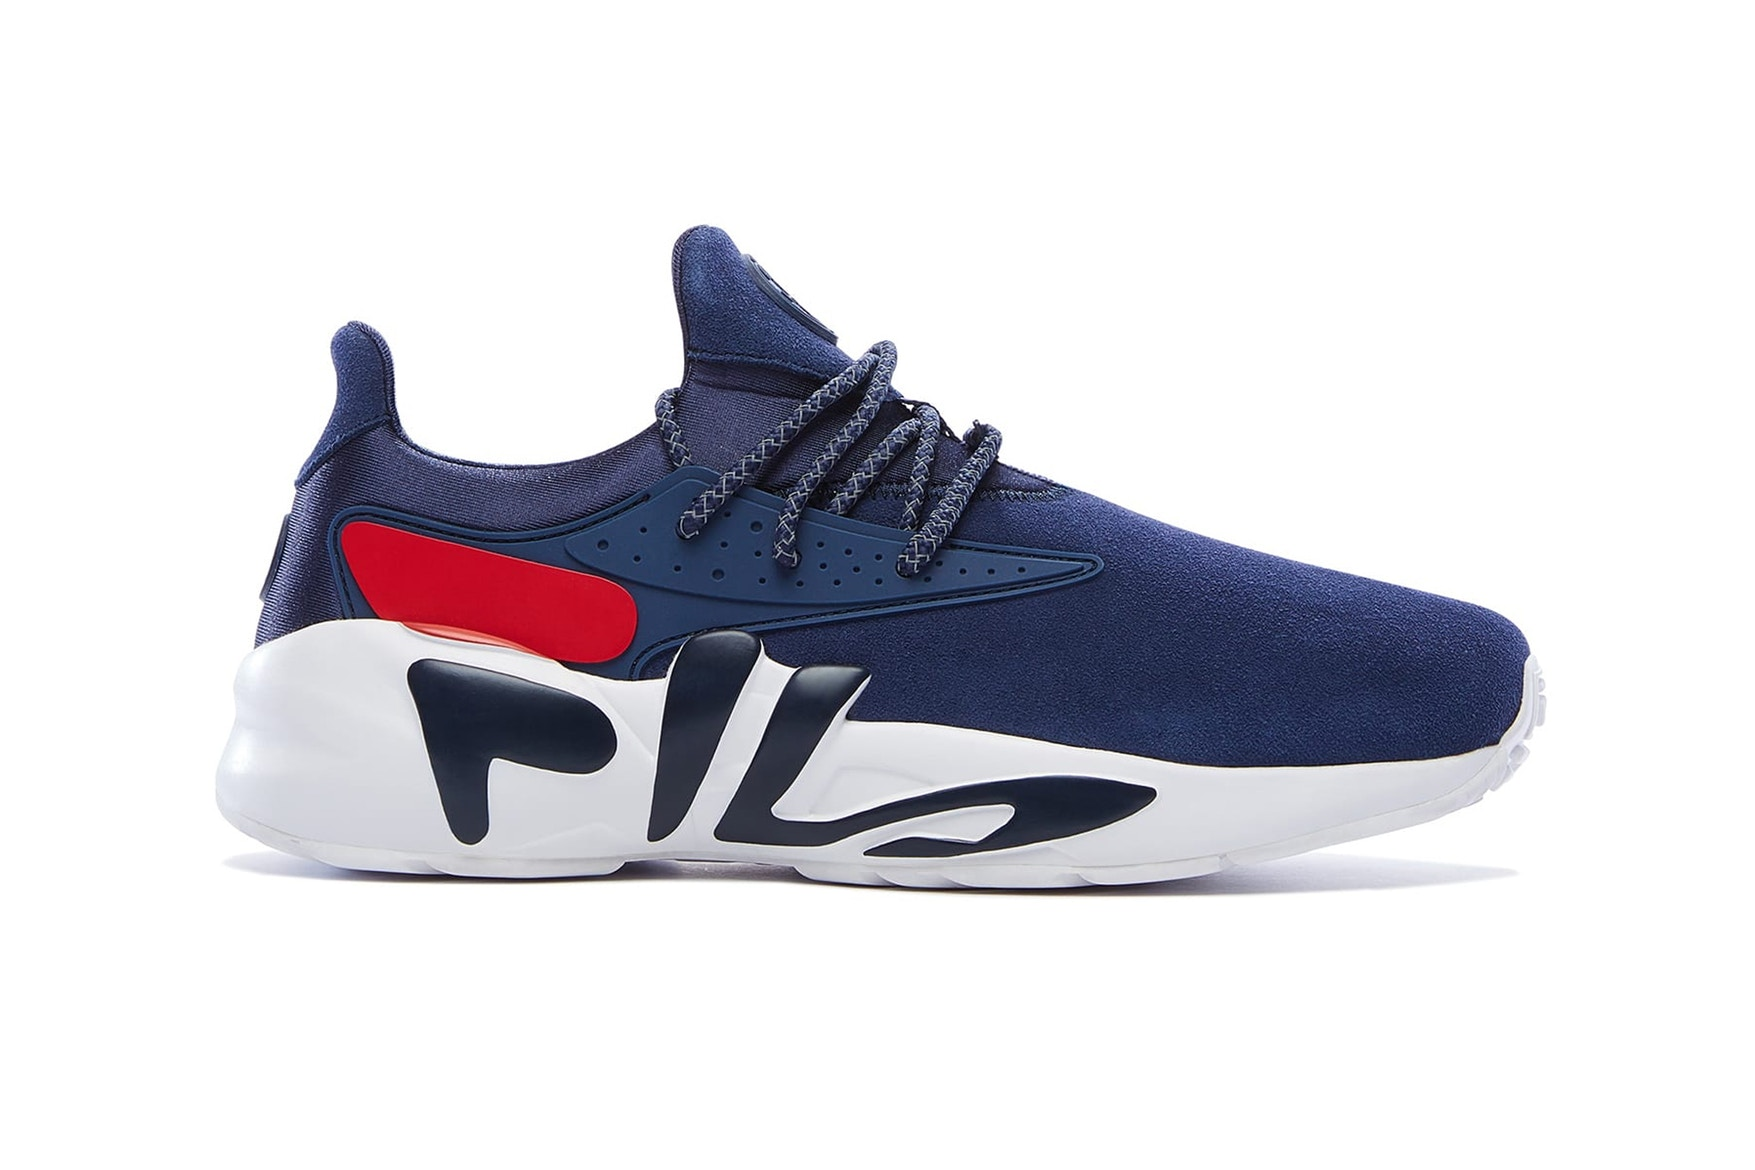 fila-revives-the-classic-mindblower-with-over-40-limited-edition-collaborations-03